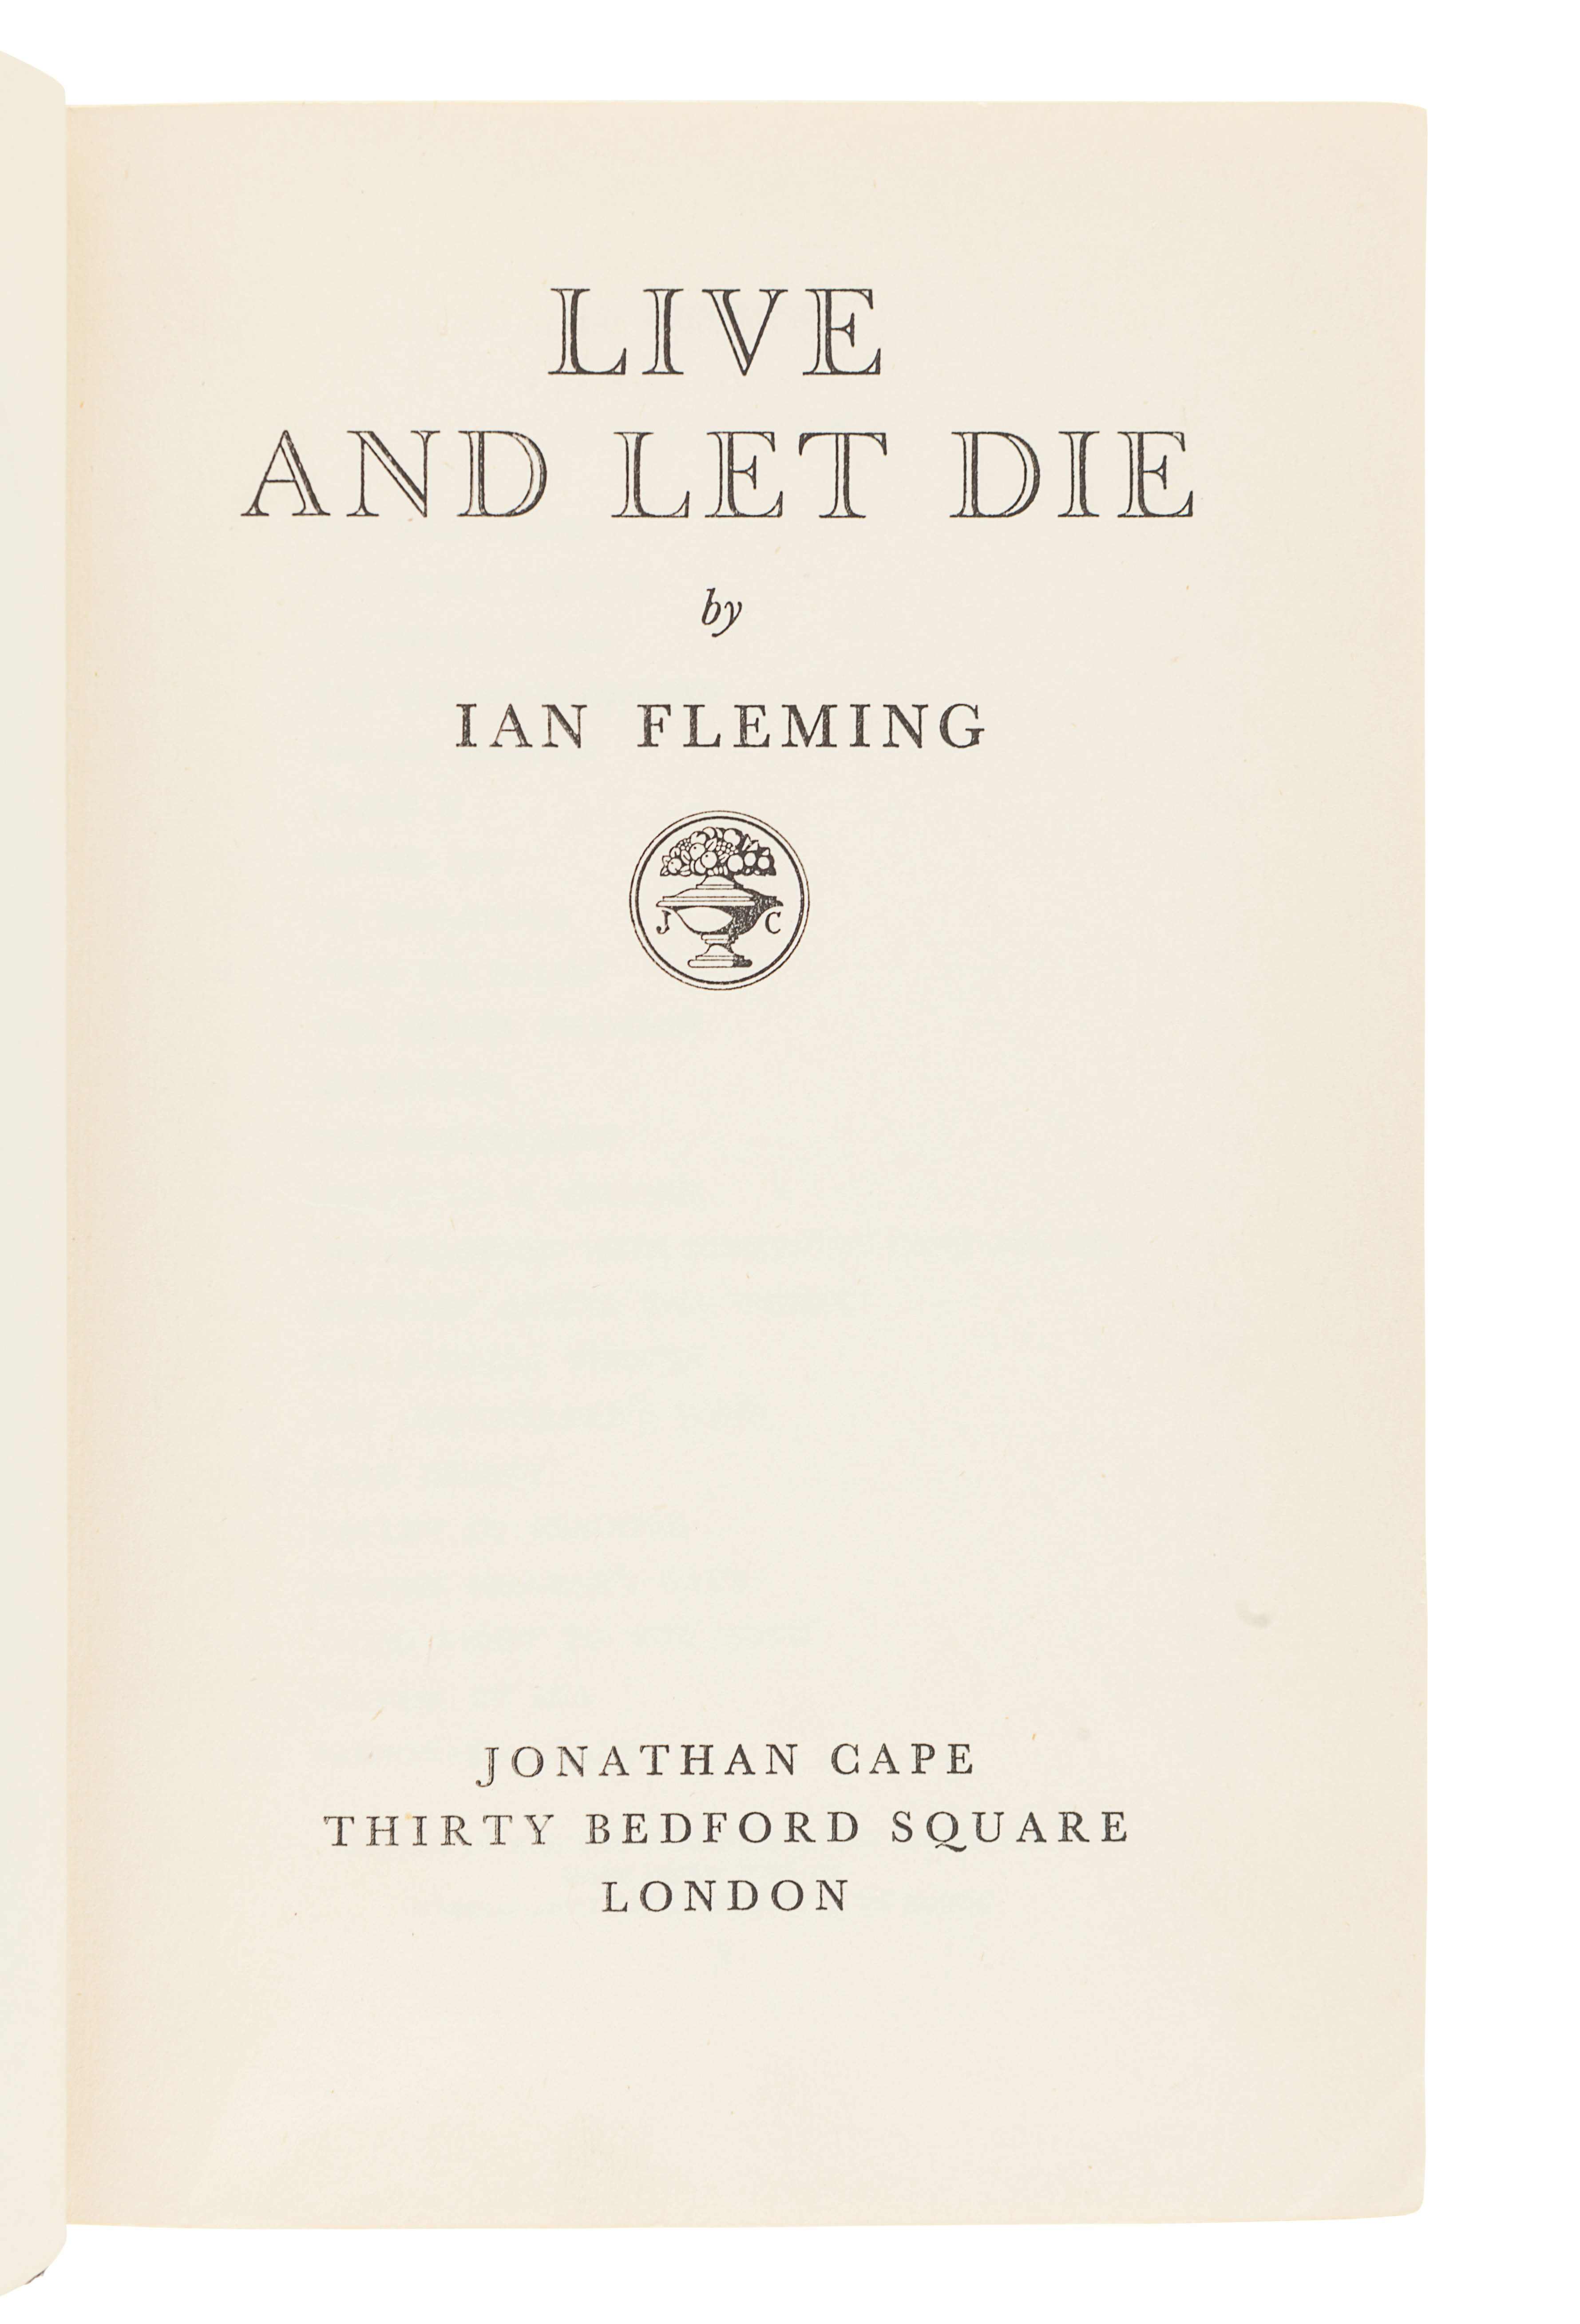 FLEMING, Ian (1908-1964). Live and Let Die. London: Jonathan Cape, 1954. - Image 3 of 3